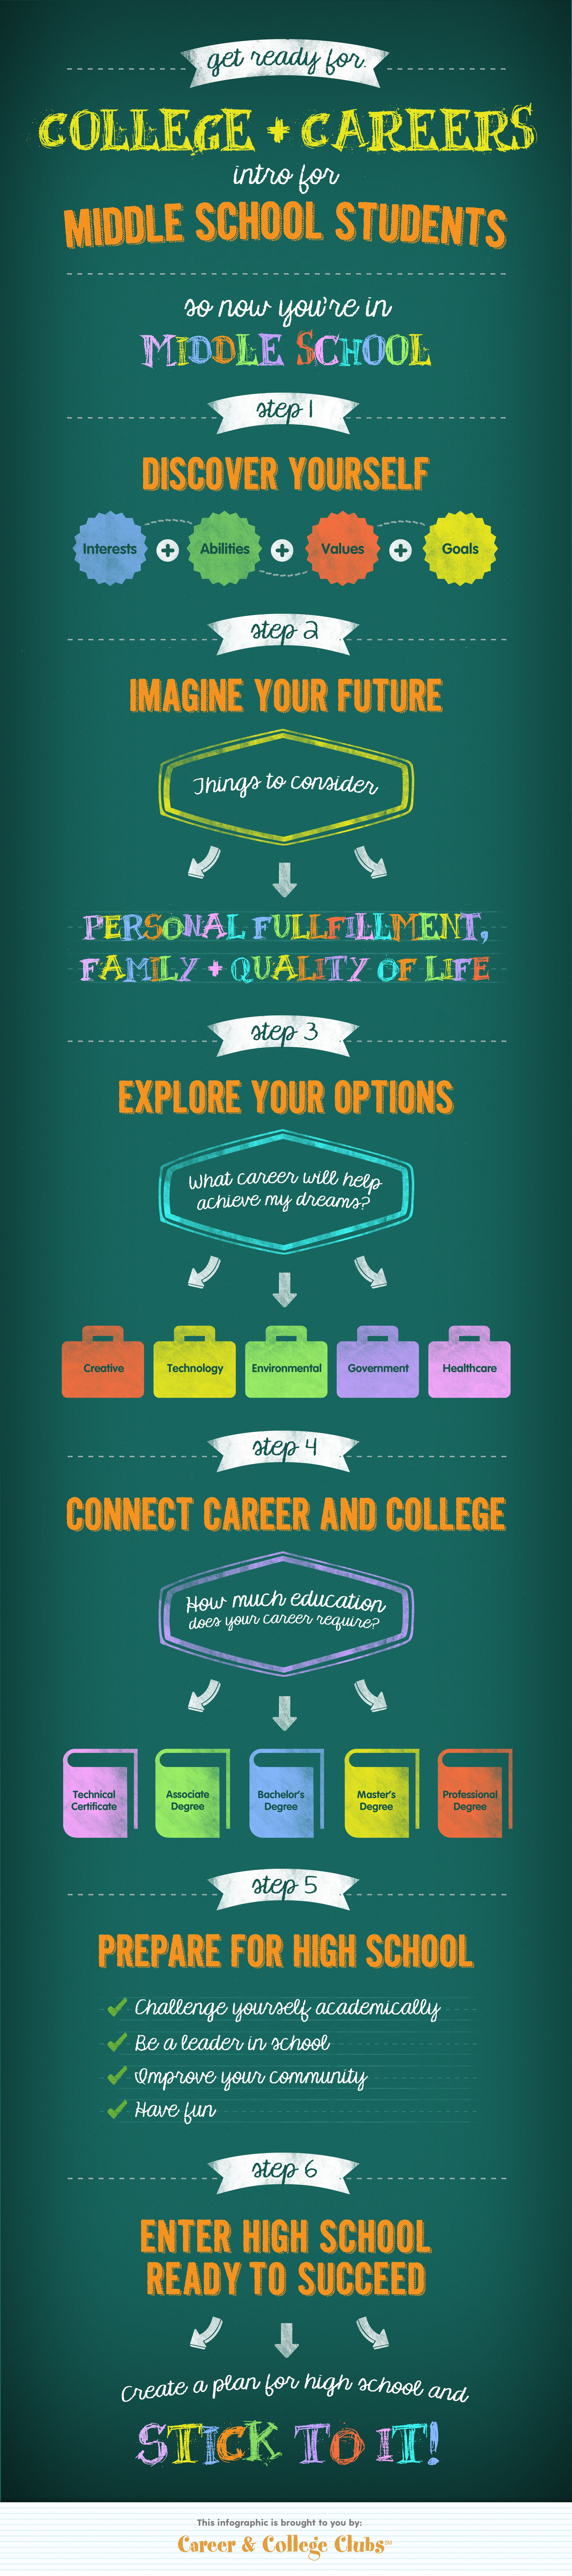 Career & College Clubs Designed Fun And Easy